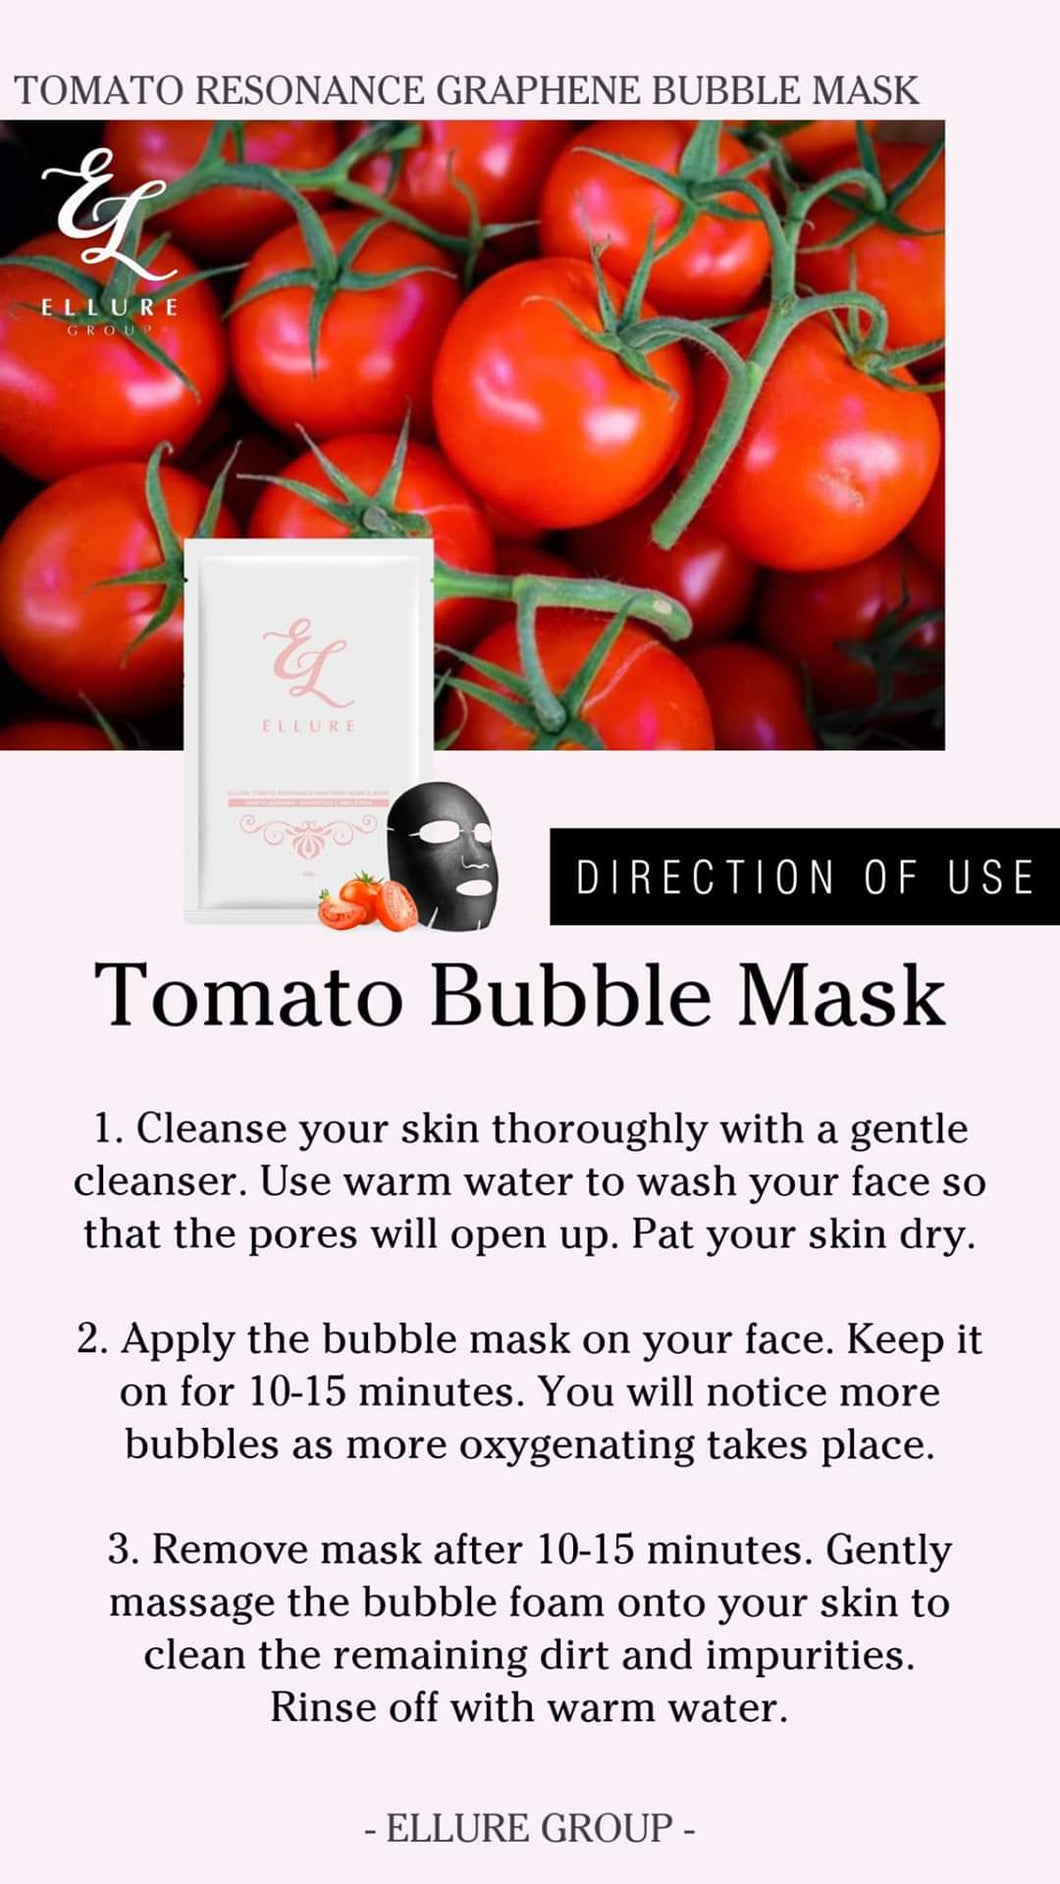 How to use Ellure Bubble Mask - The Blossom Gift